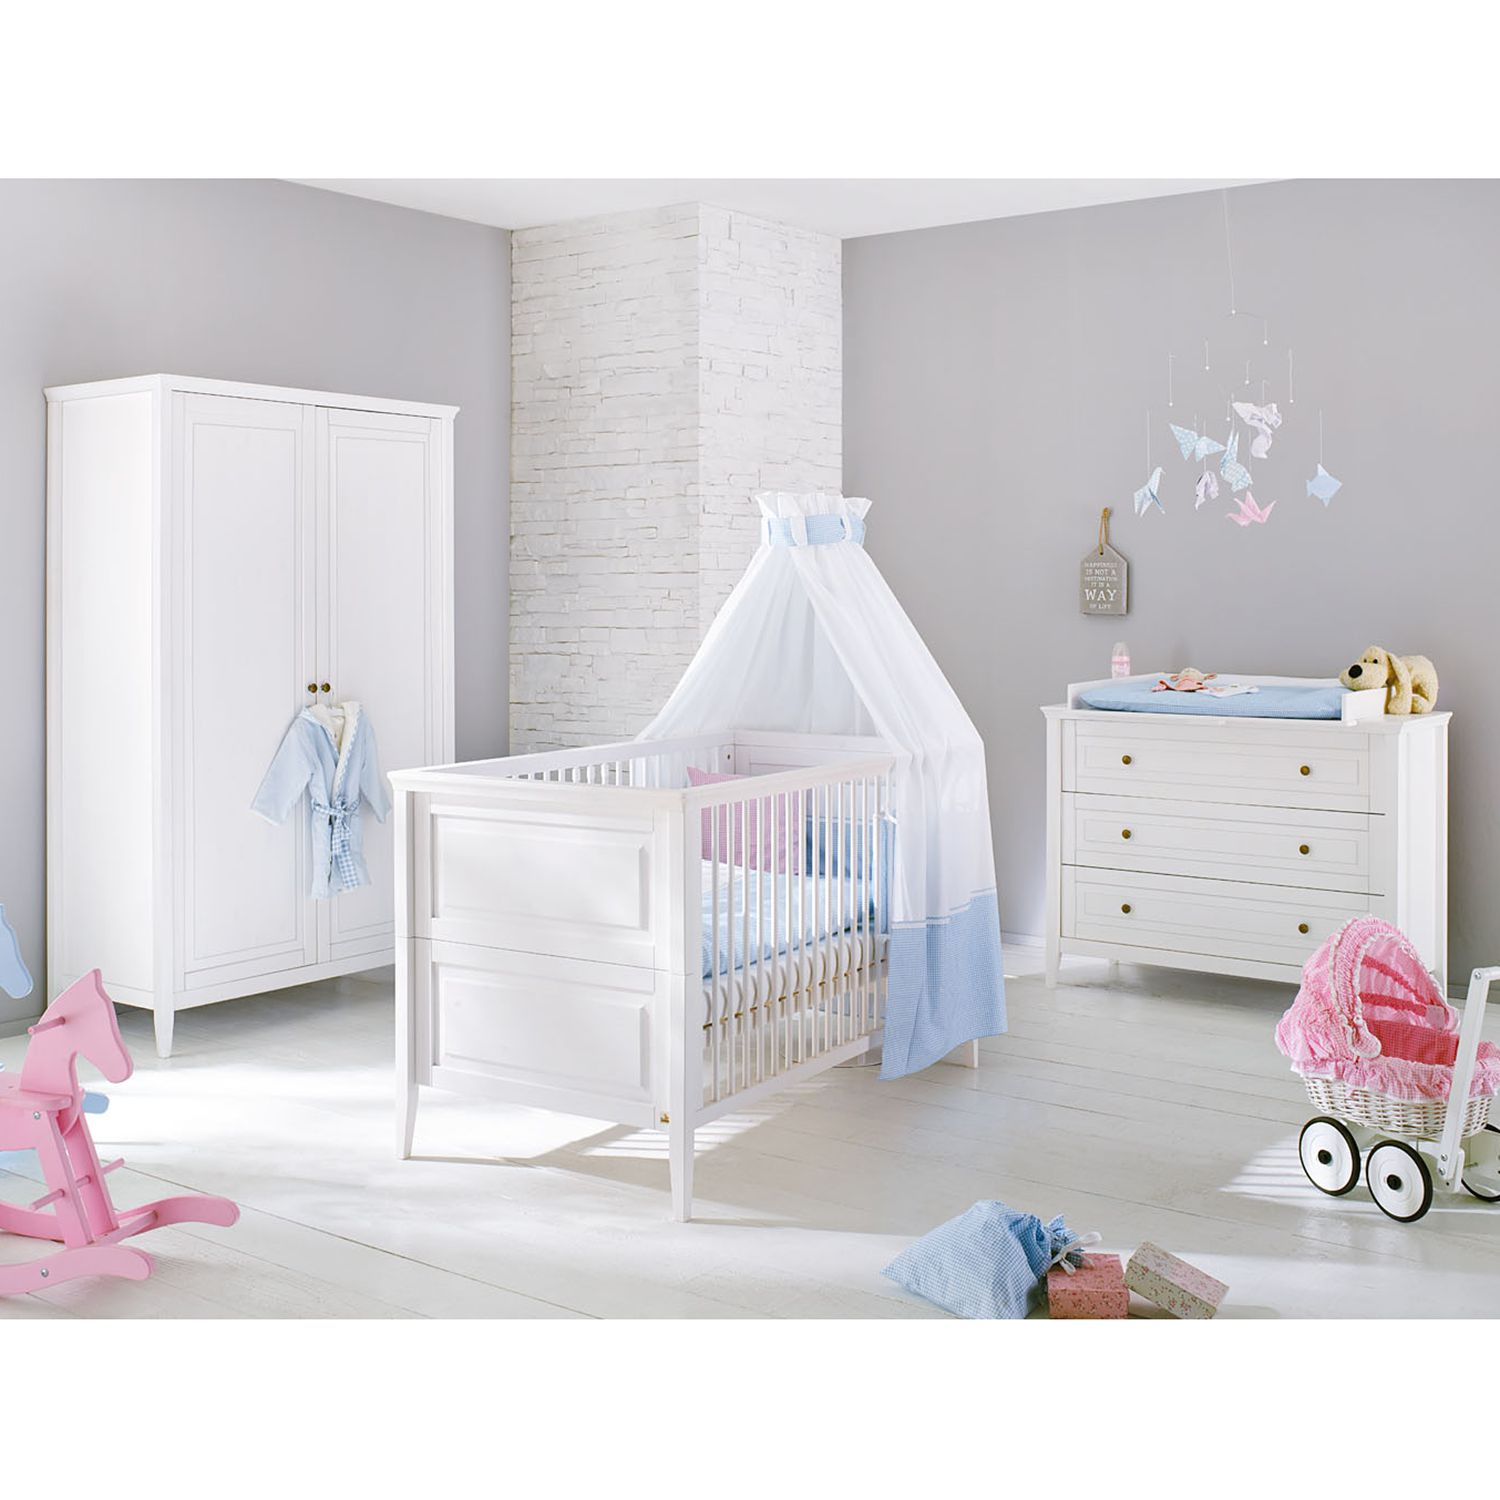 Drehtuerenschrank Smilla Kids Must-Have, Offer 1846